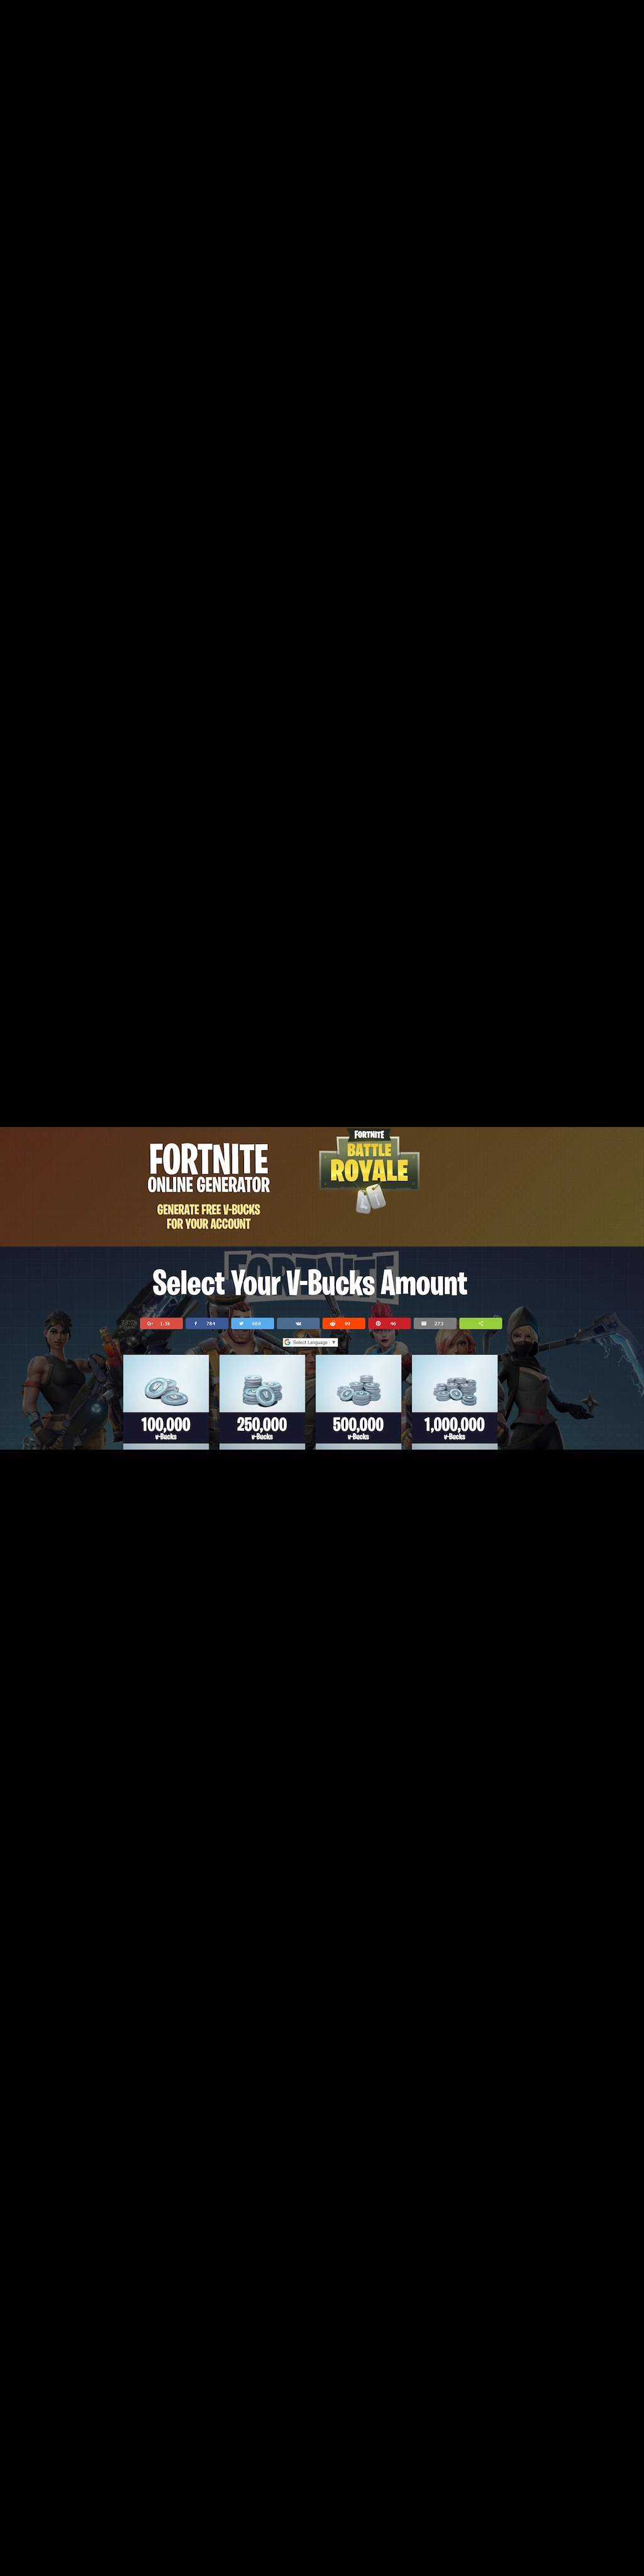 Www Fortnitefree Net - Releasetheupperfootage.com -